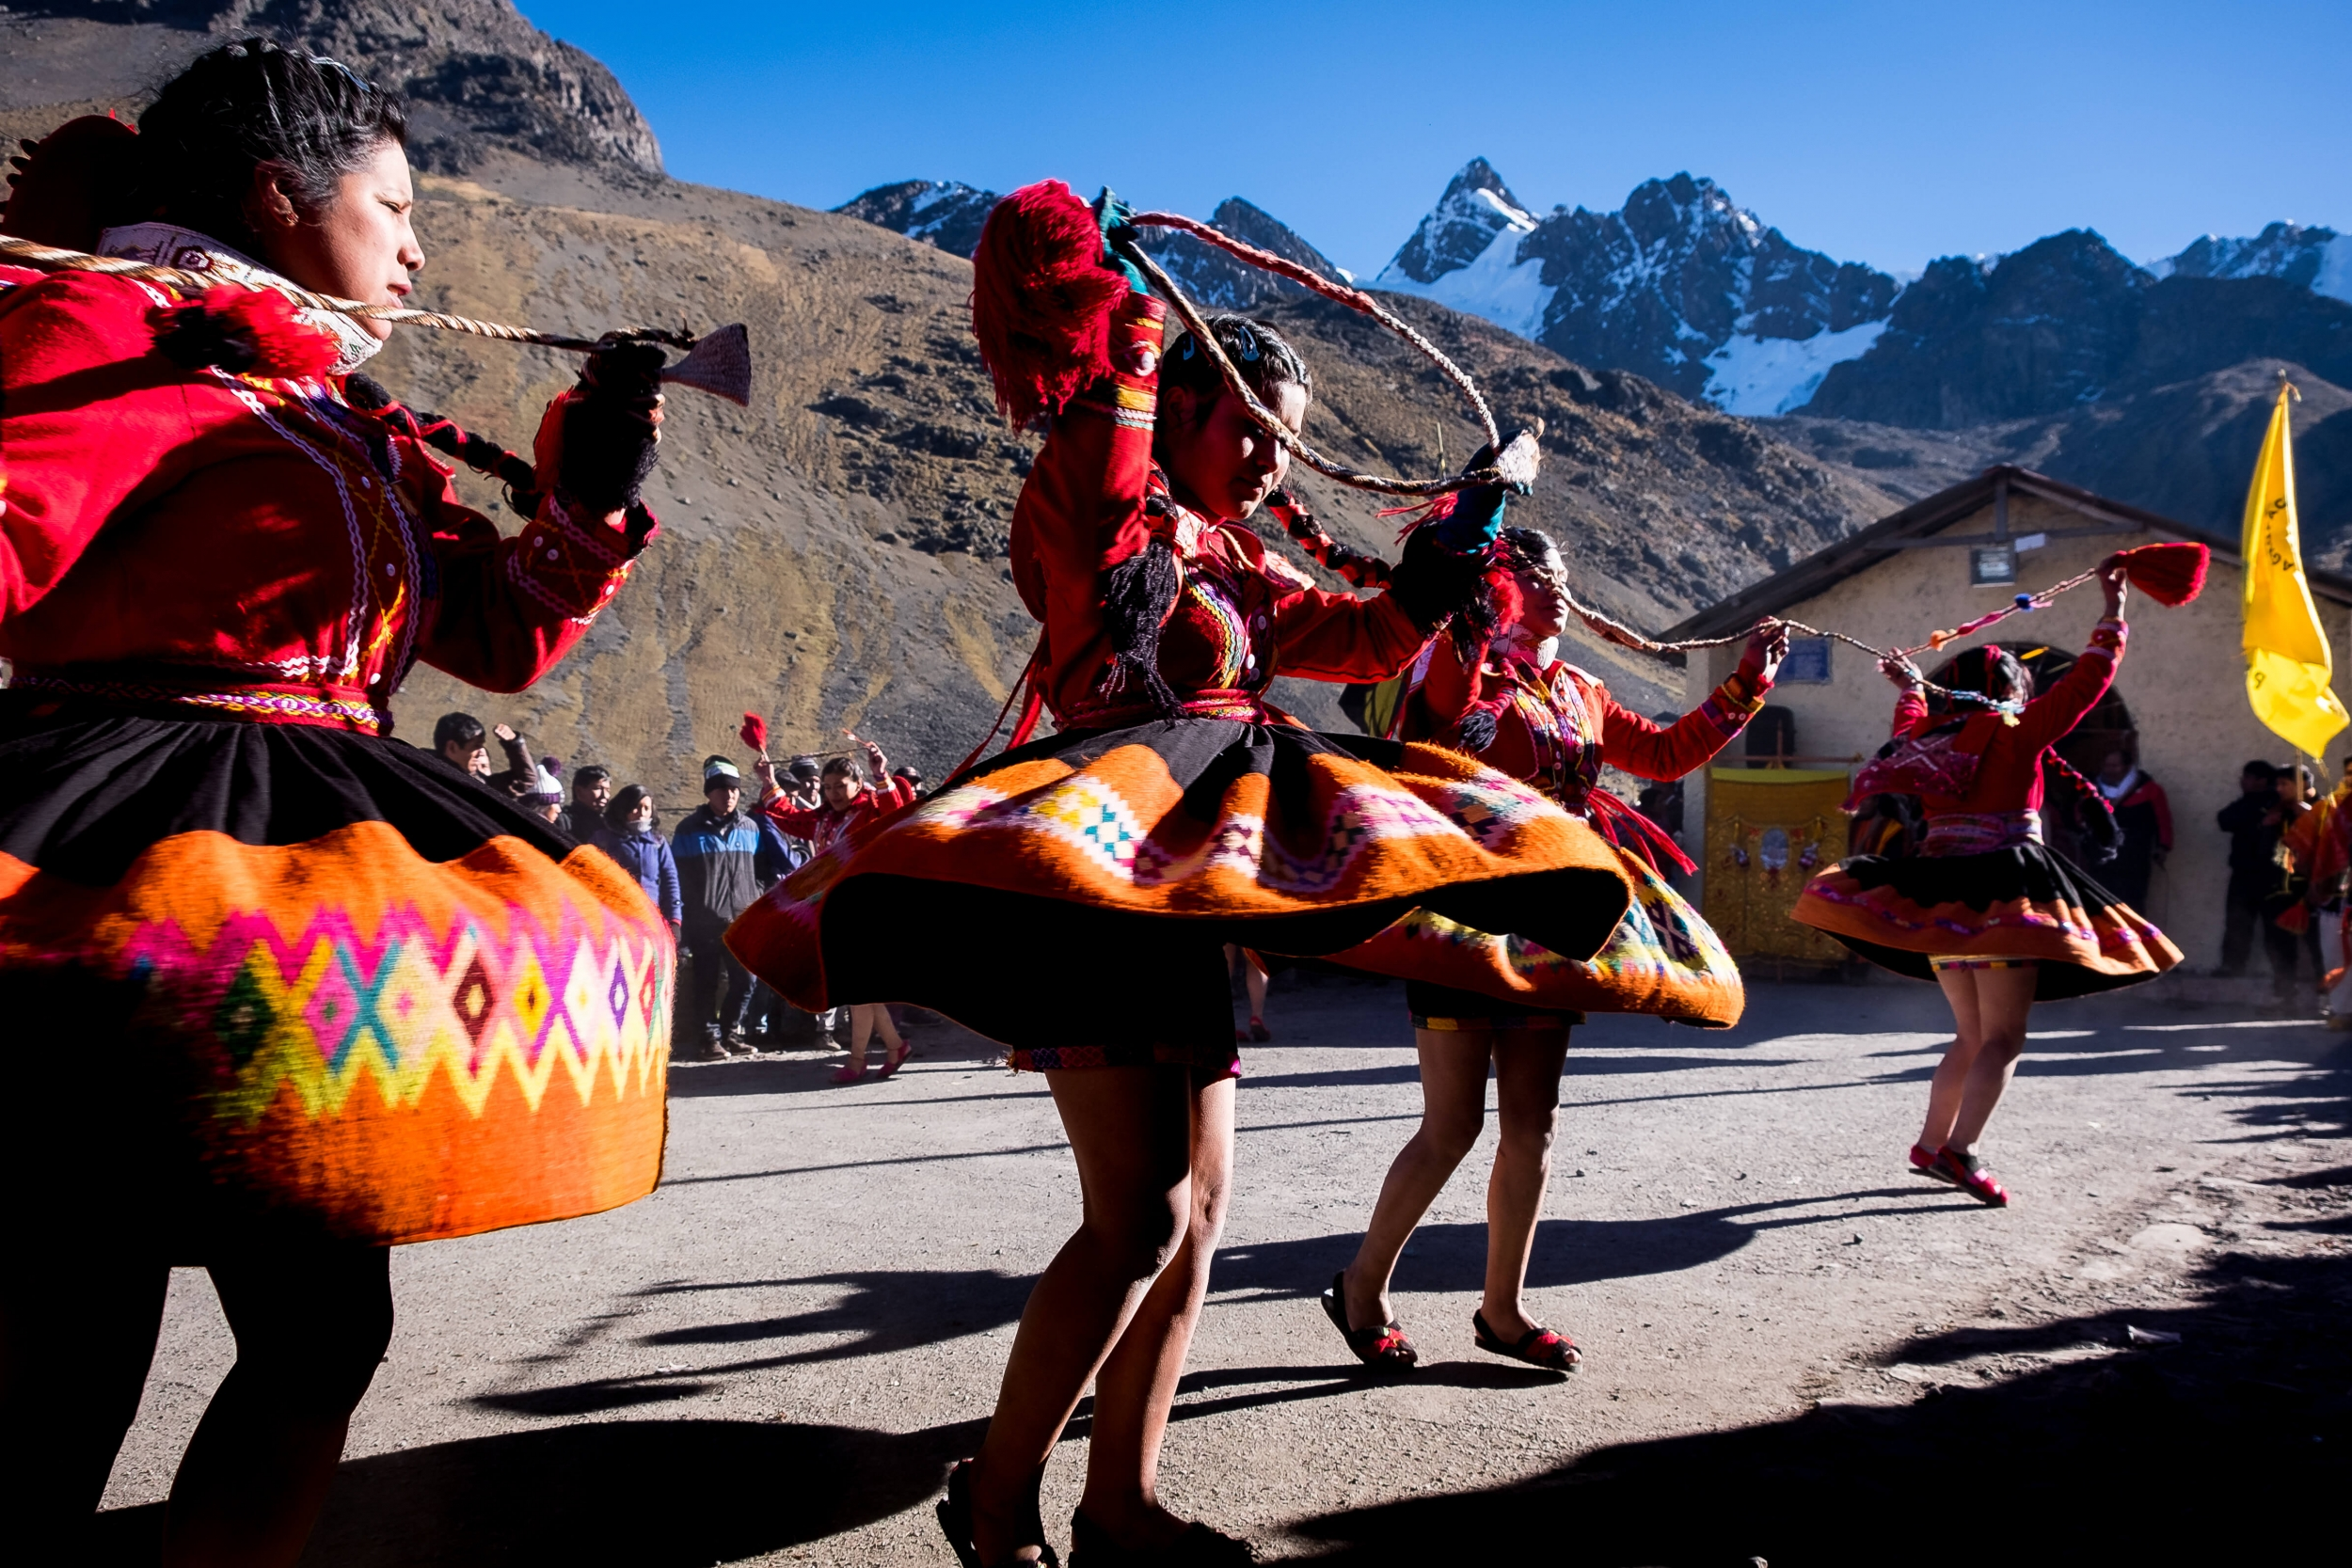 Qoylluriti traditional dance, Ausangate region, sacred mountain